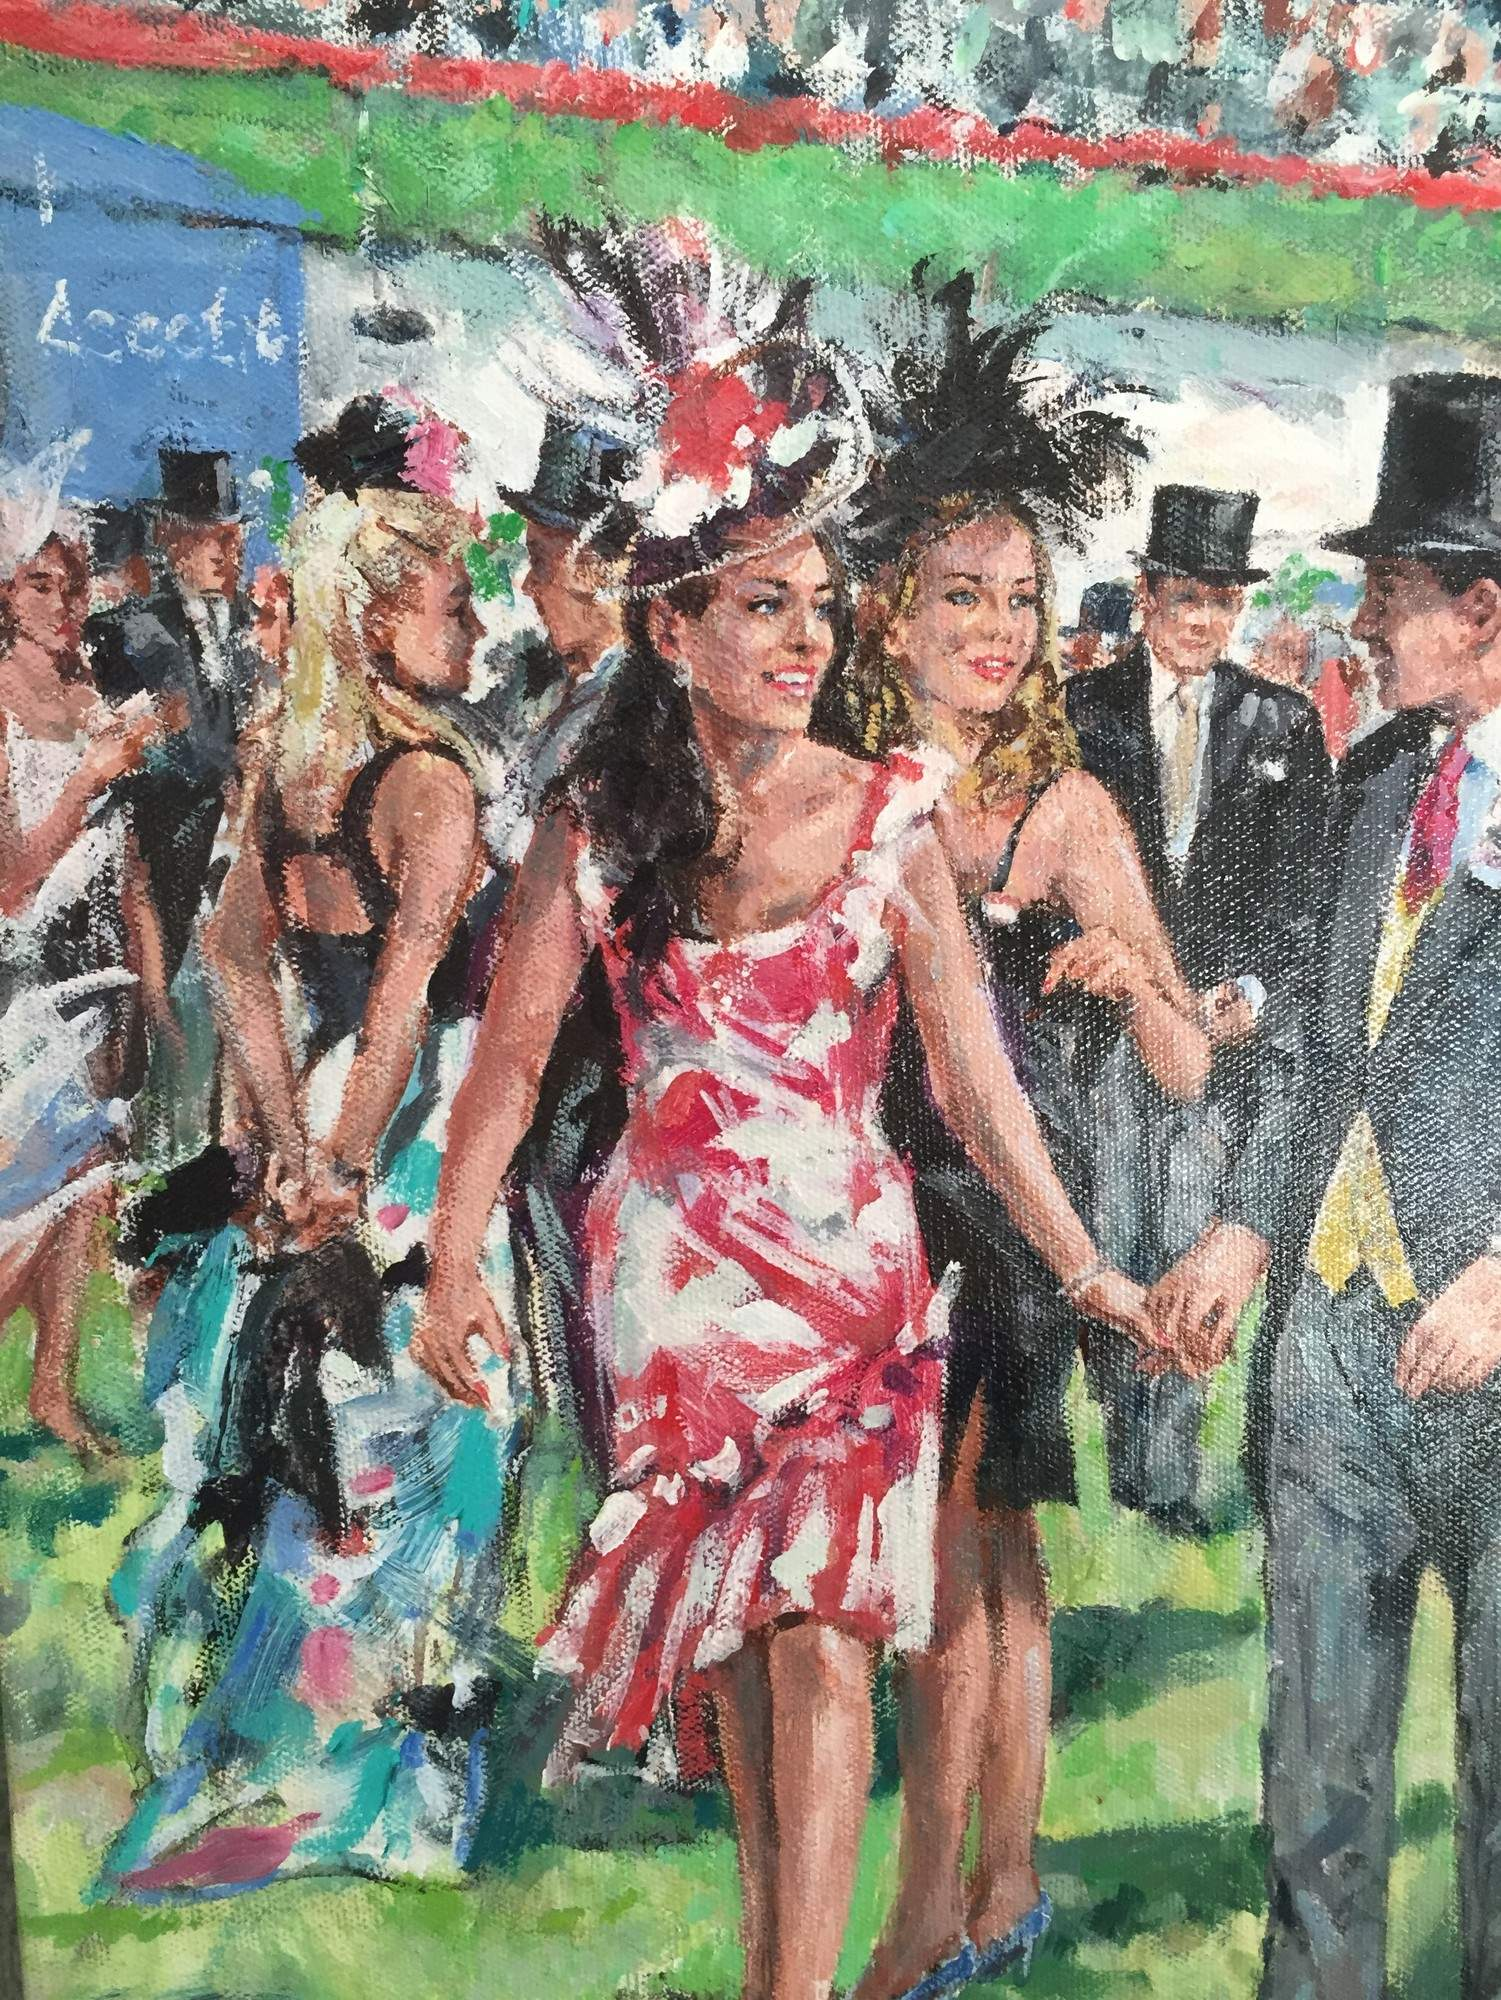 walking out ascot close up 2